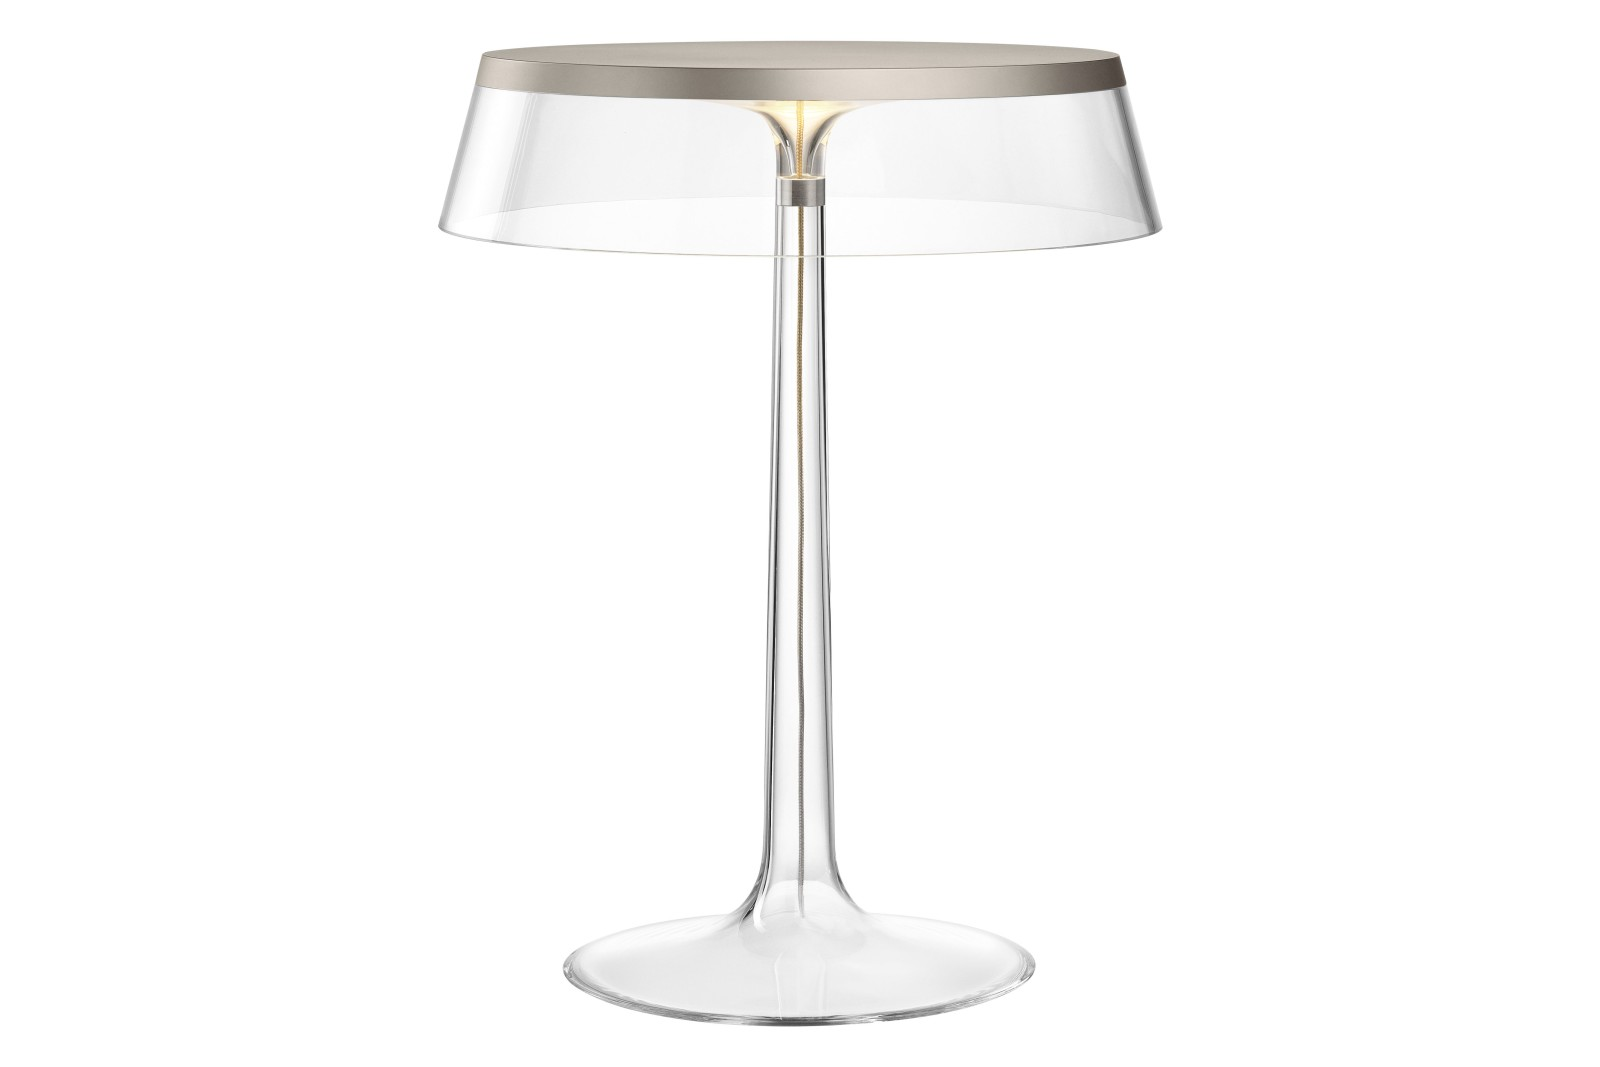 Bon Jour Table Lamp PMMA Transparent, PMMA Matt Chrome